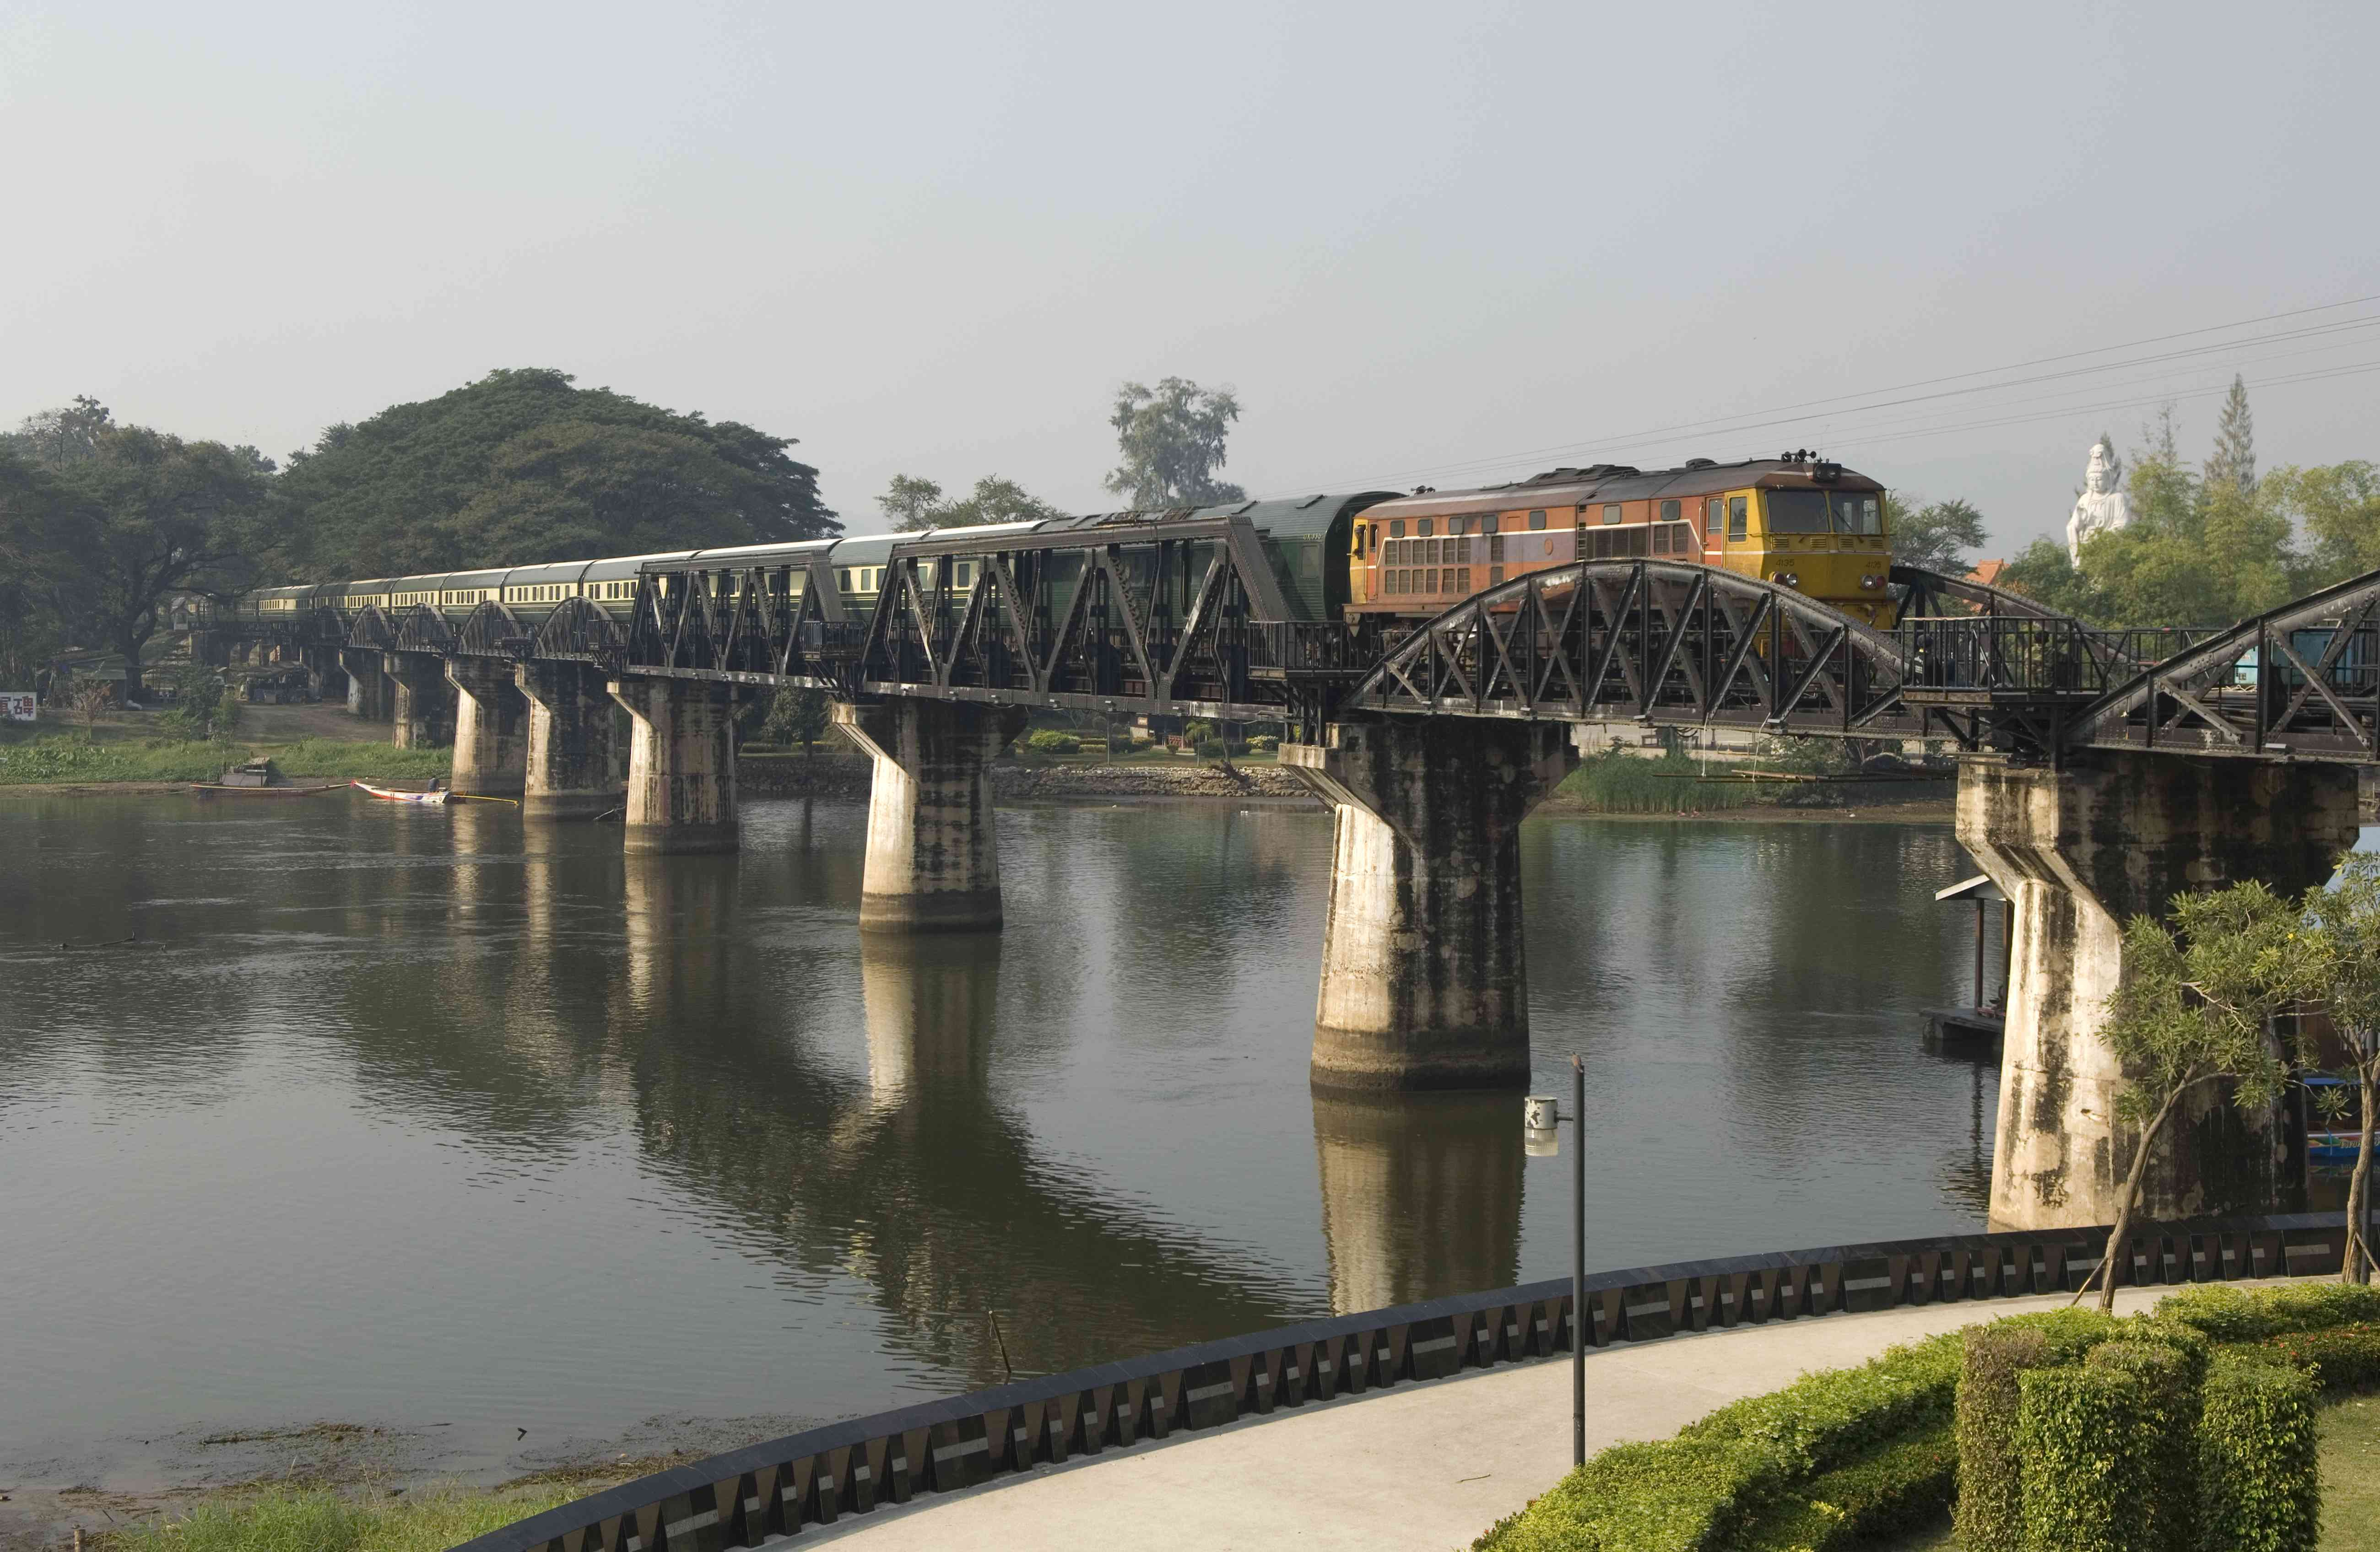 Eastern and Oriental Express crossing bridge over River Kwai, Thailand